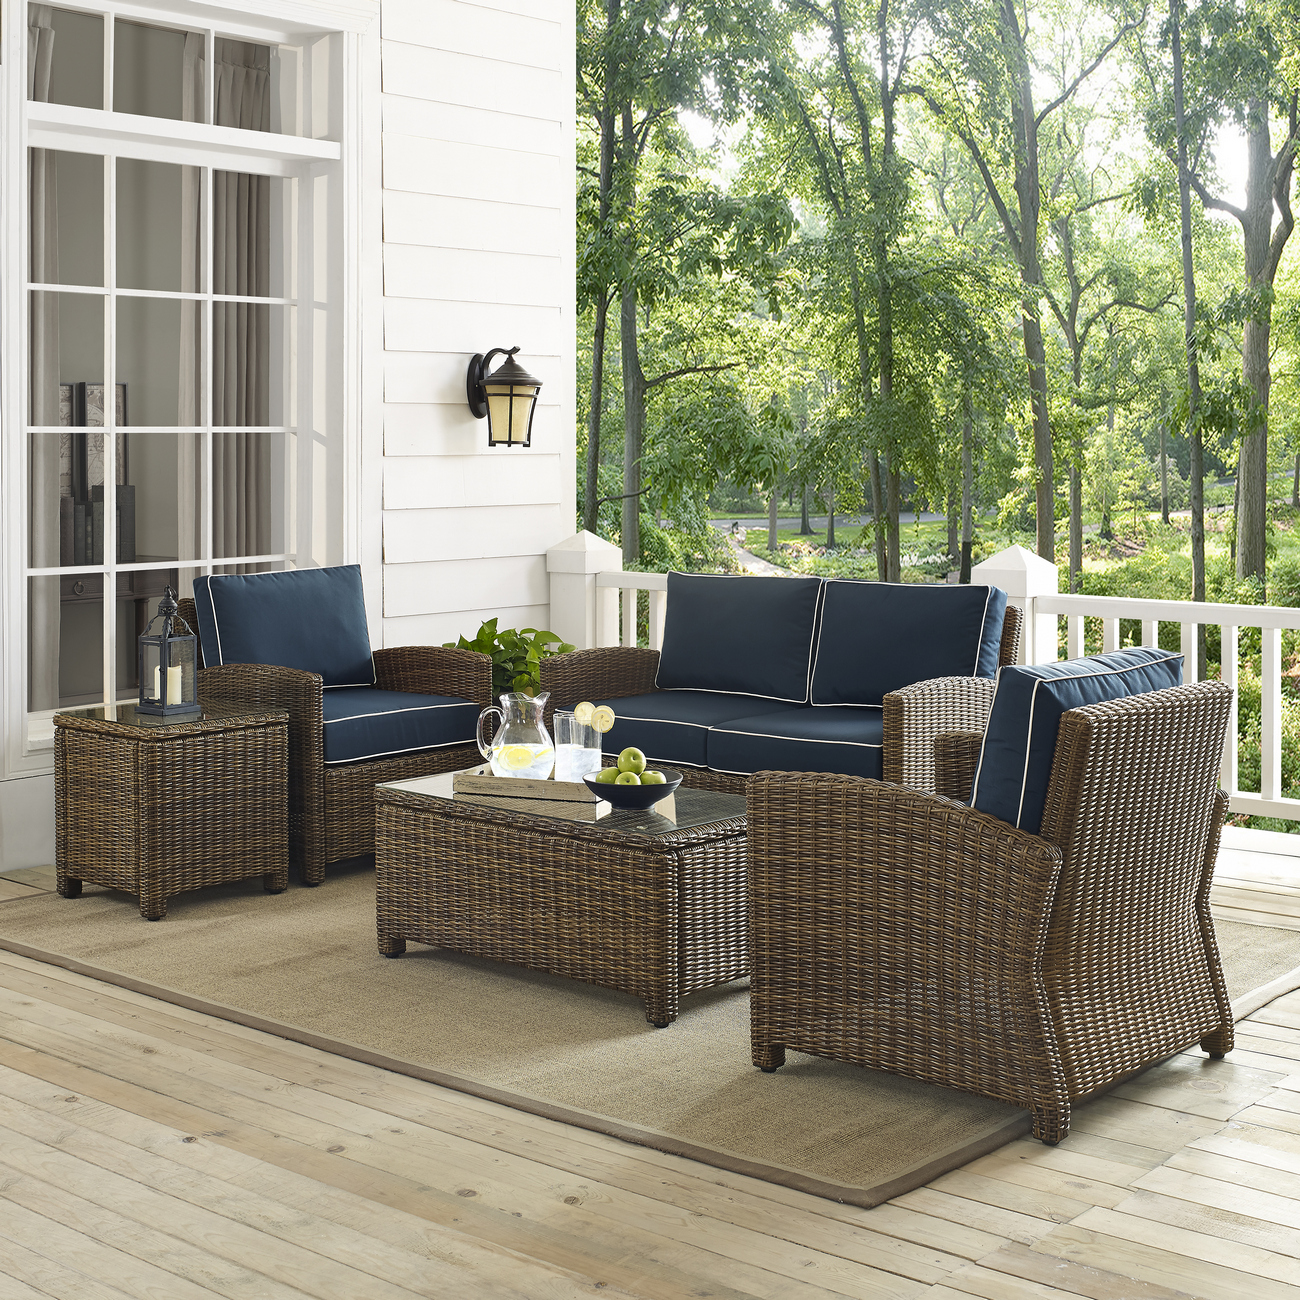 Outdoor Wicker Conversation Set Cushions Loveseat Two Arm Chairs Side Table Glass Top Table